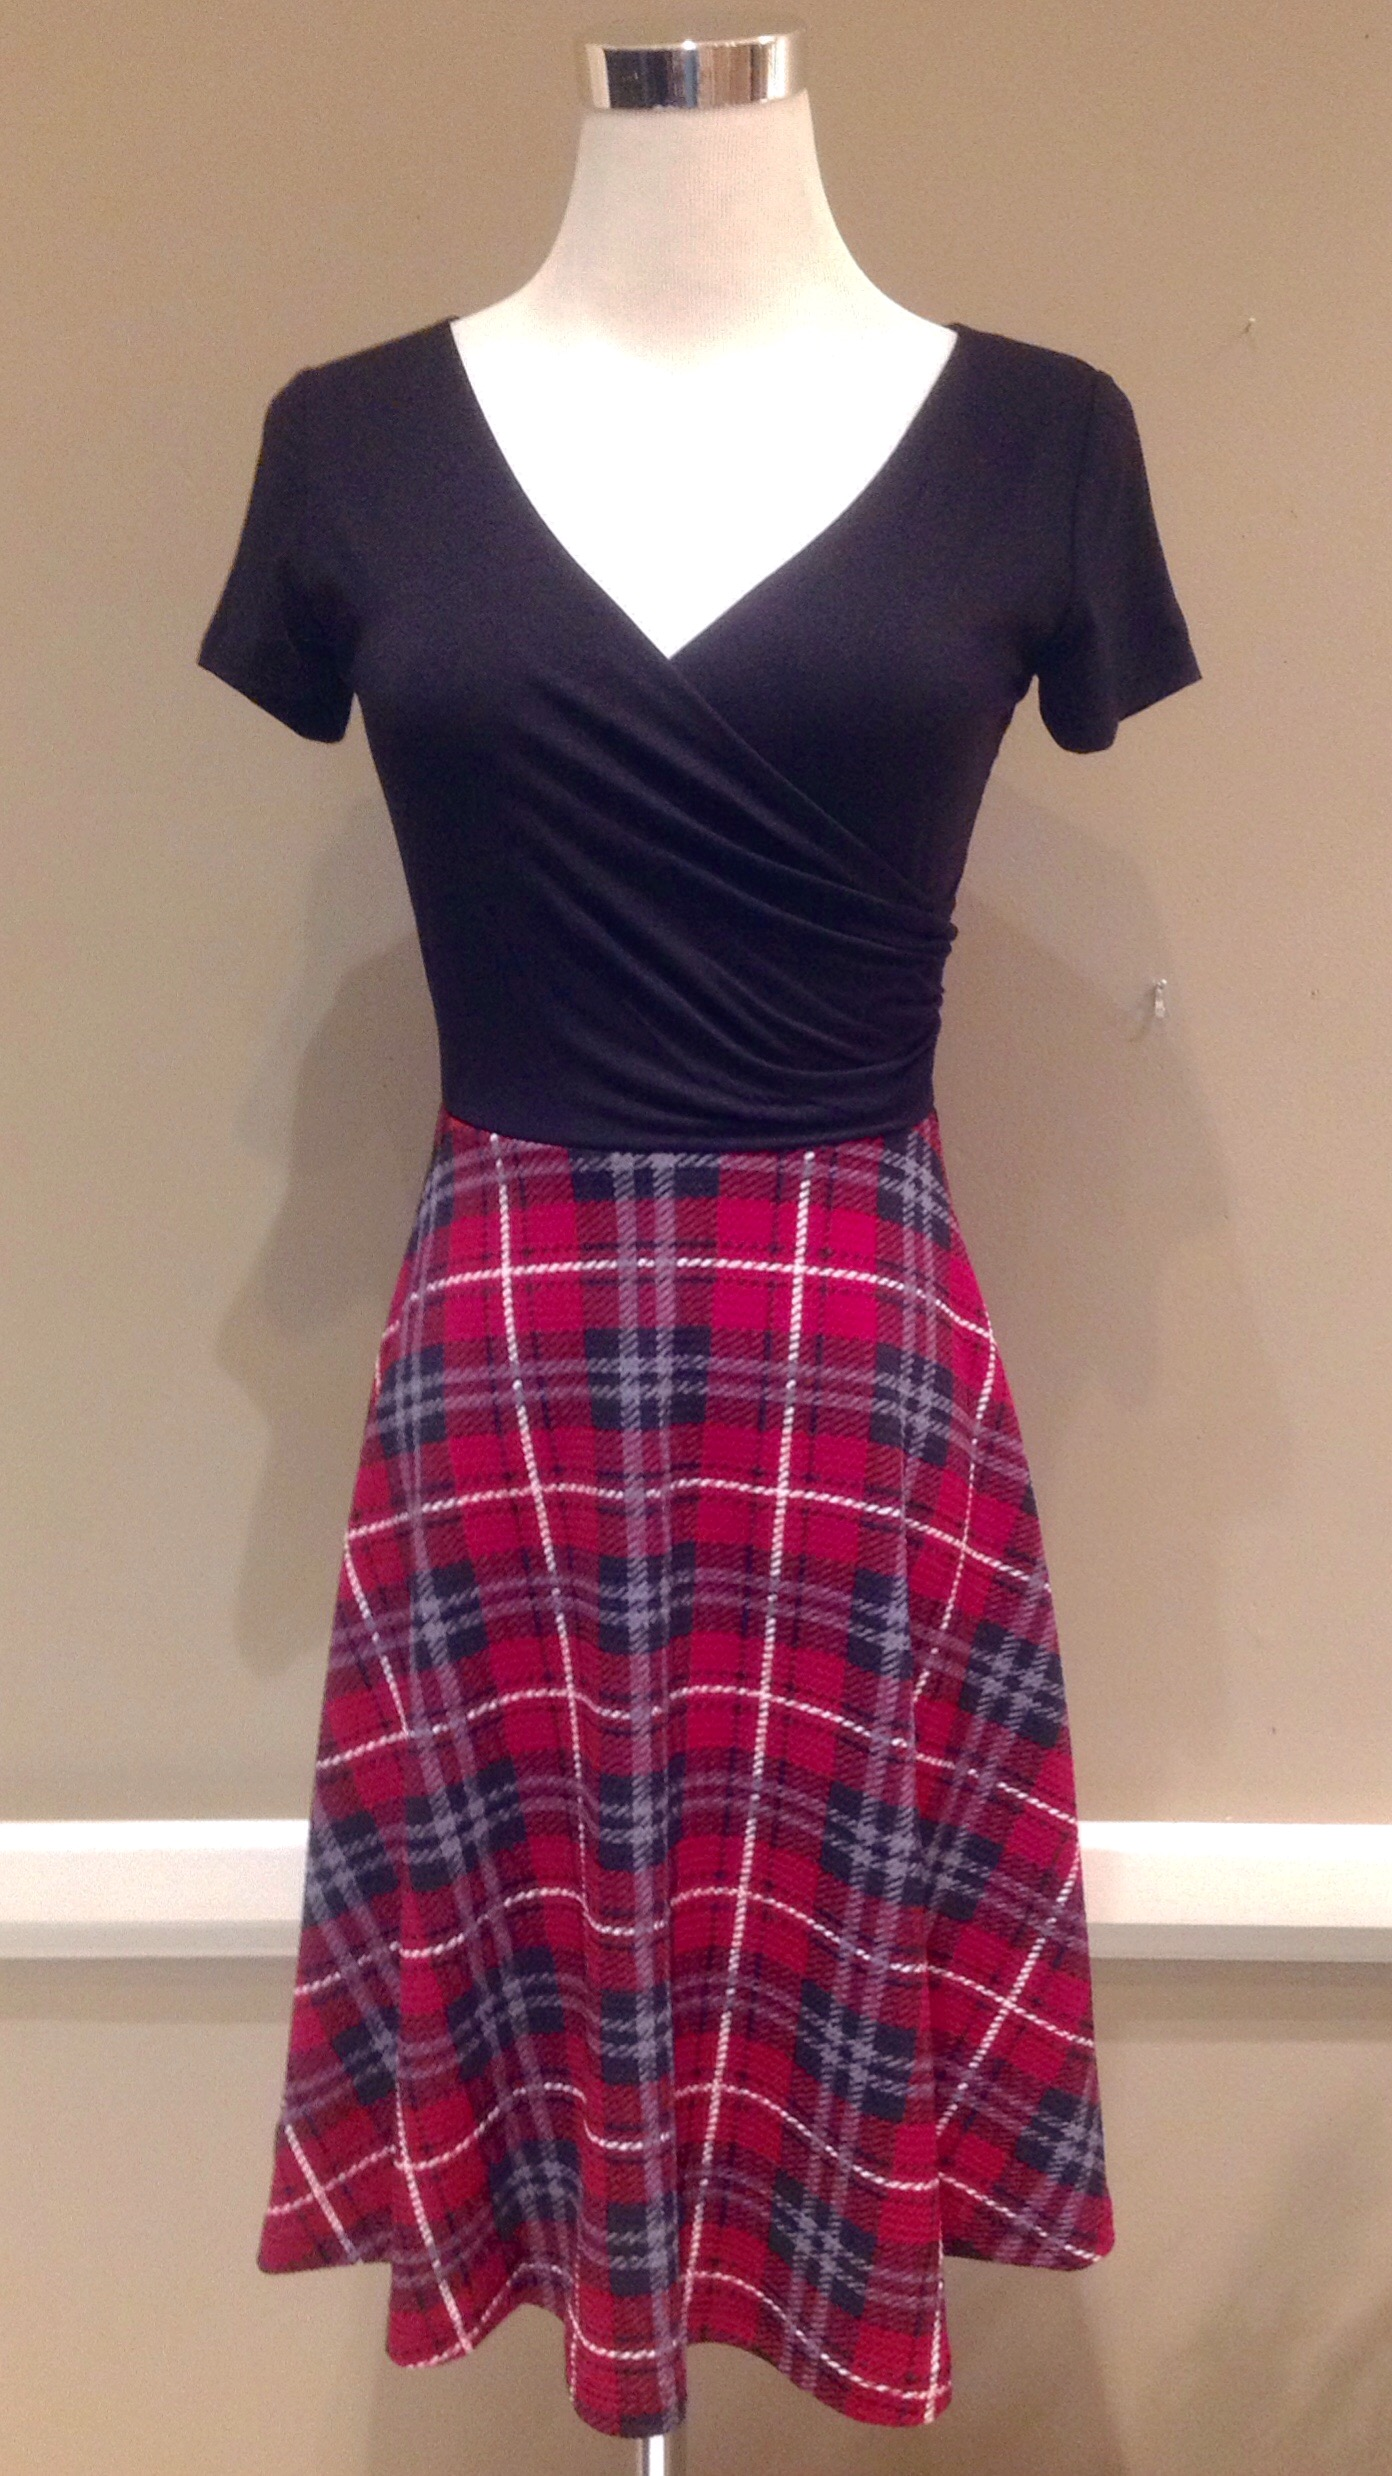 Knit wrap front dress with A-line skirt in black/red plaid,  $42